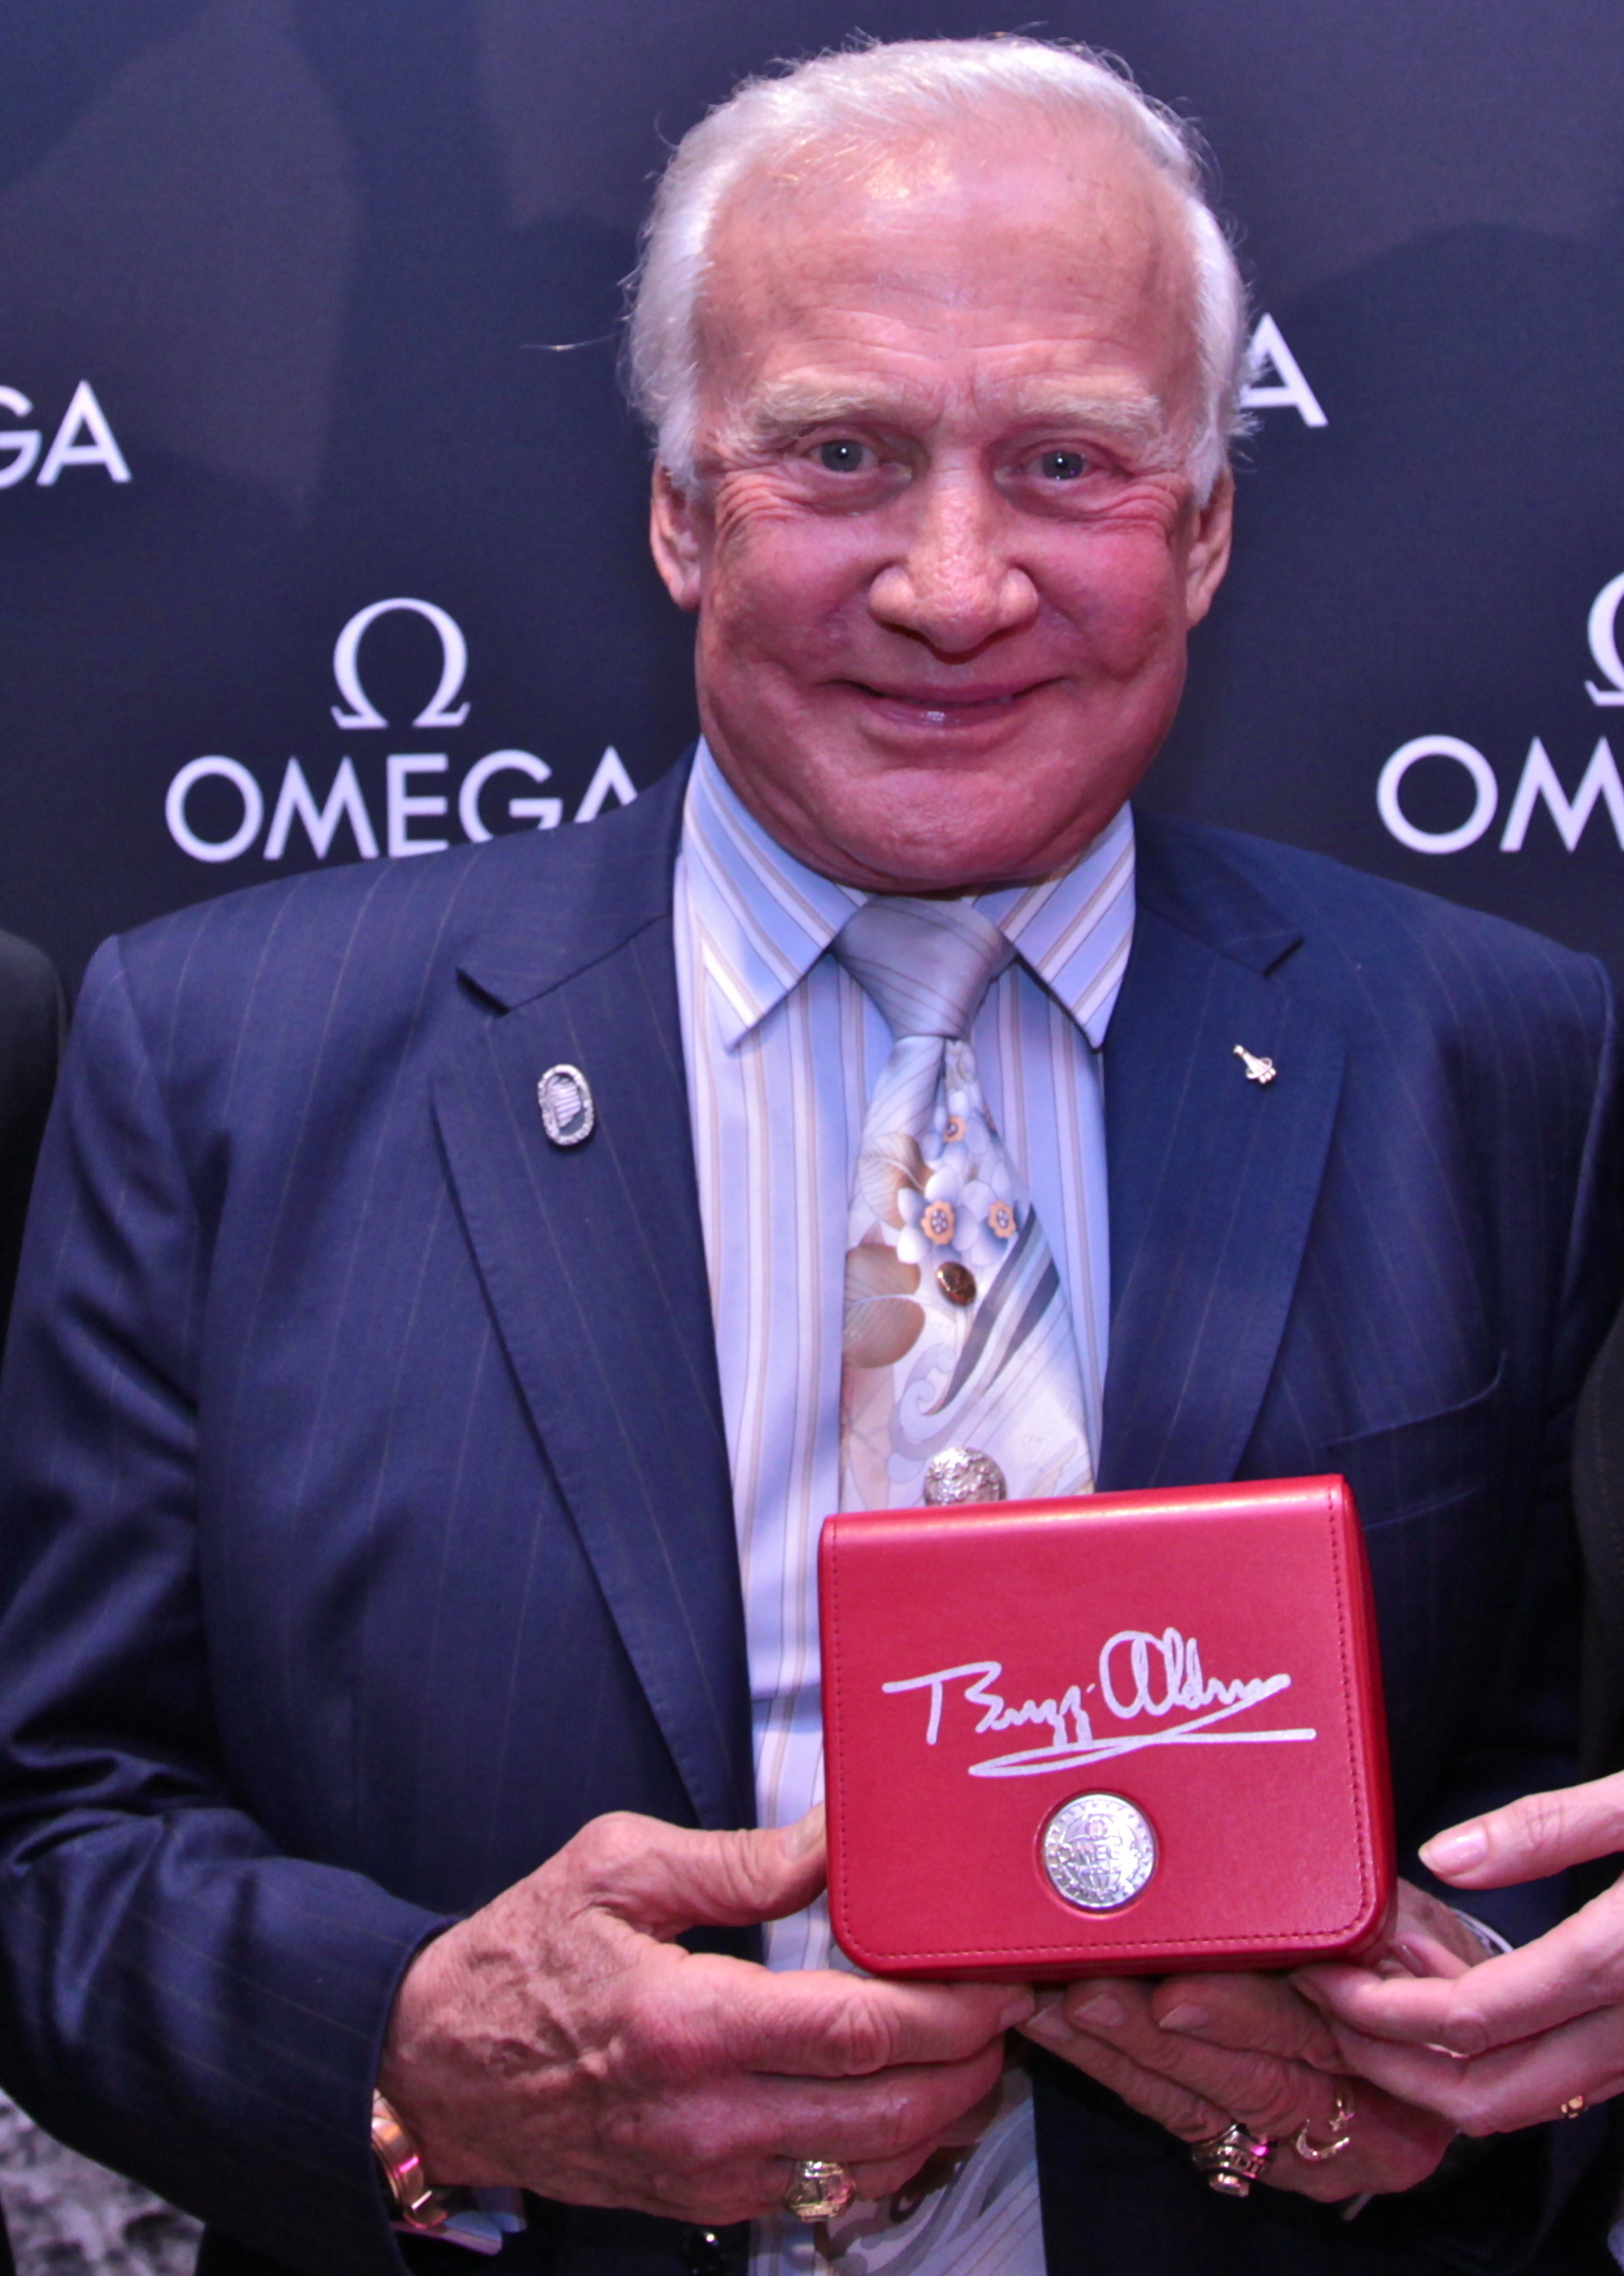 Press Release Omega Welcomes Buzz Aldrin To Sydney Speedy Watches